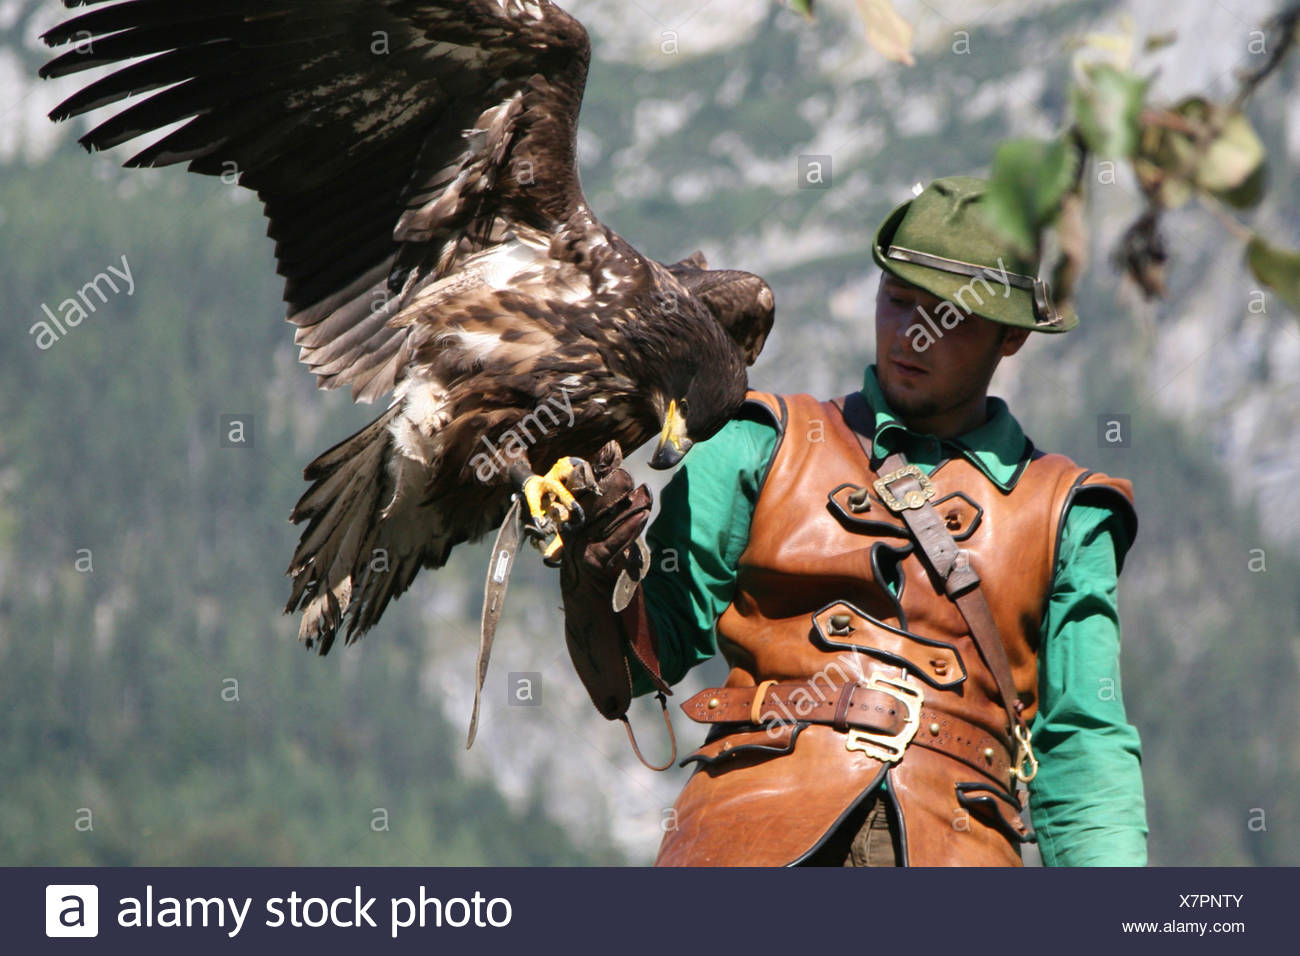 Austria County Of Salzburg Hohenwerfen Castle Birds Of Prey Show Falconer With A Griffon Vulture Stock Photo Alamy